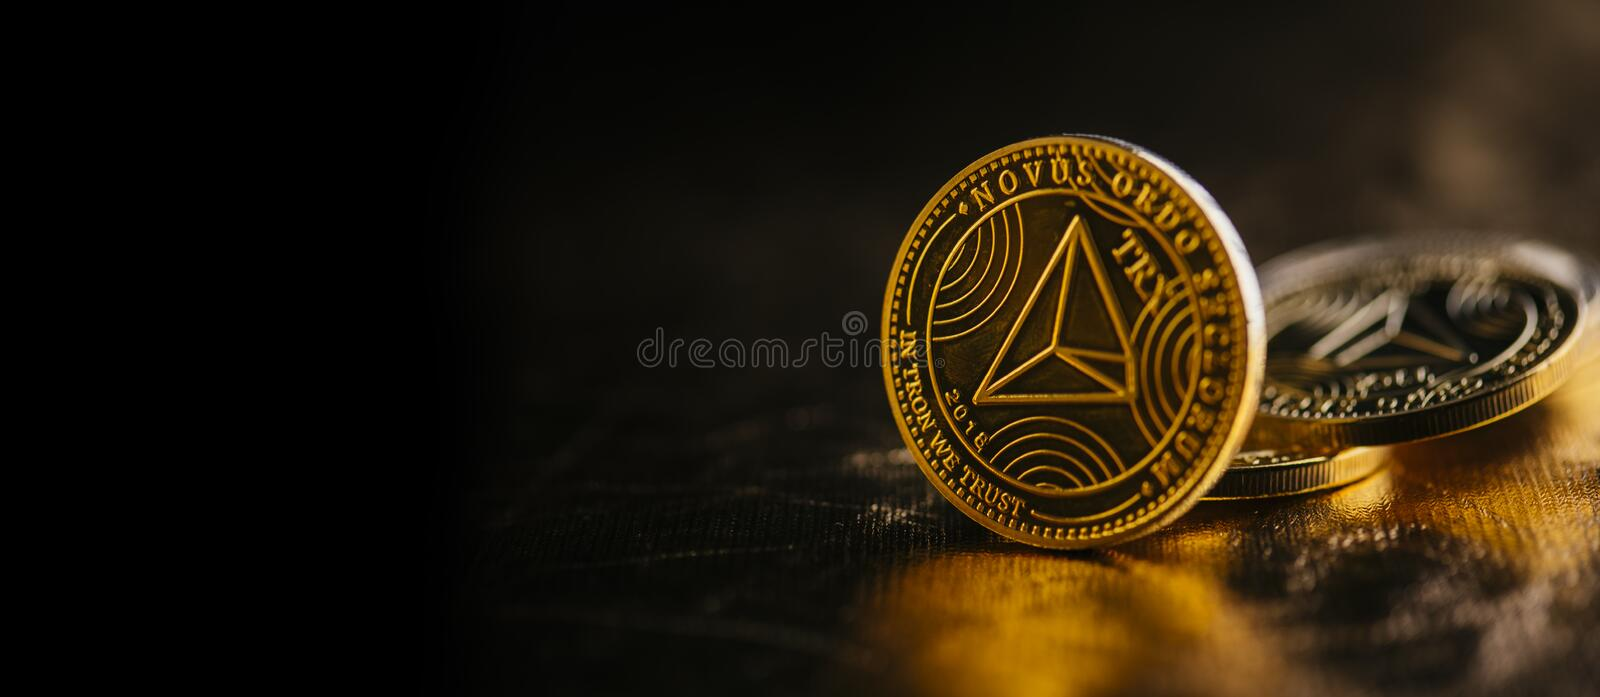 Cryptocurrency de Tron photographie stock